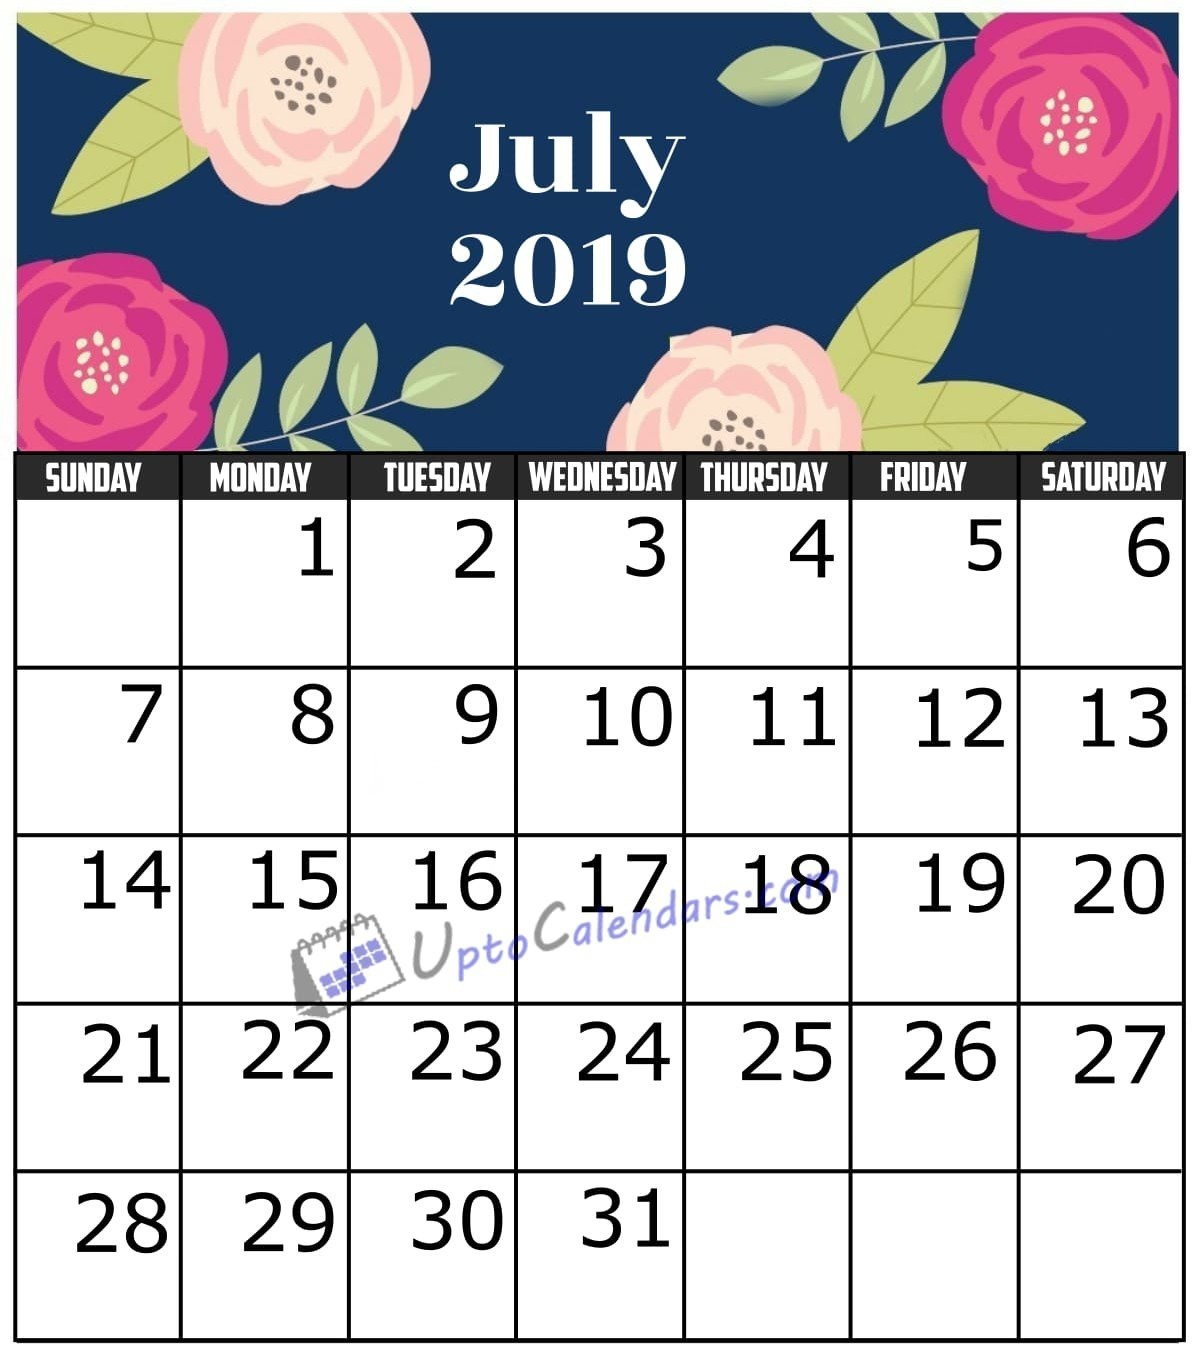 July 2019 Calendar Printable Template With Holidays Pdf Word Excel July 9 2019 Calendar